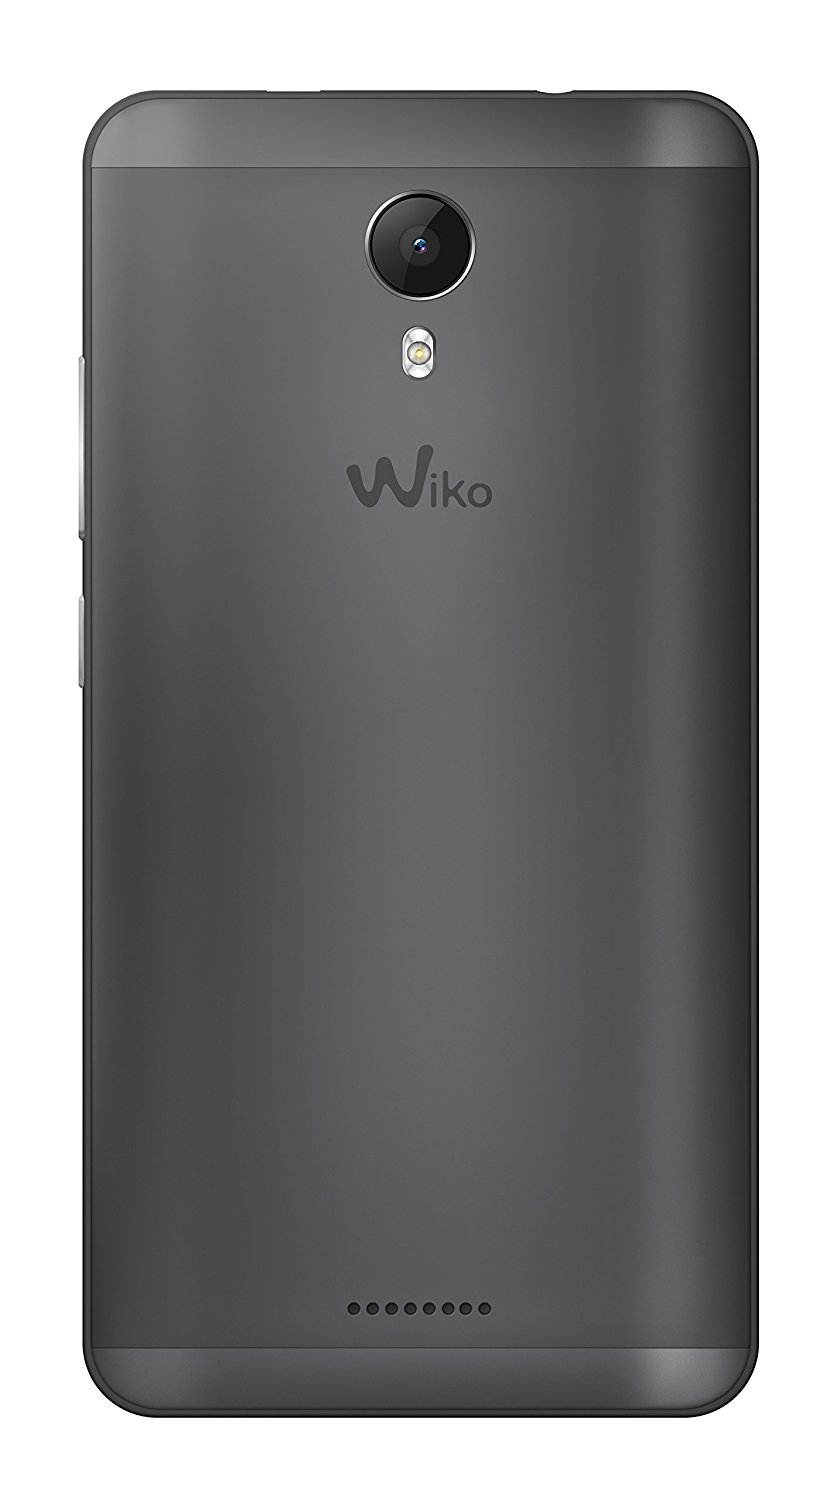 wiko jerry 2 dual sim promo smartphone by mmp. Black Bedroom Furniture Sets. Home Design Ideas